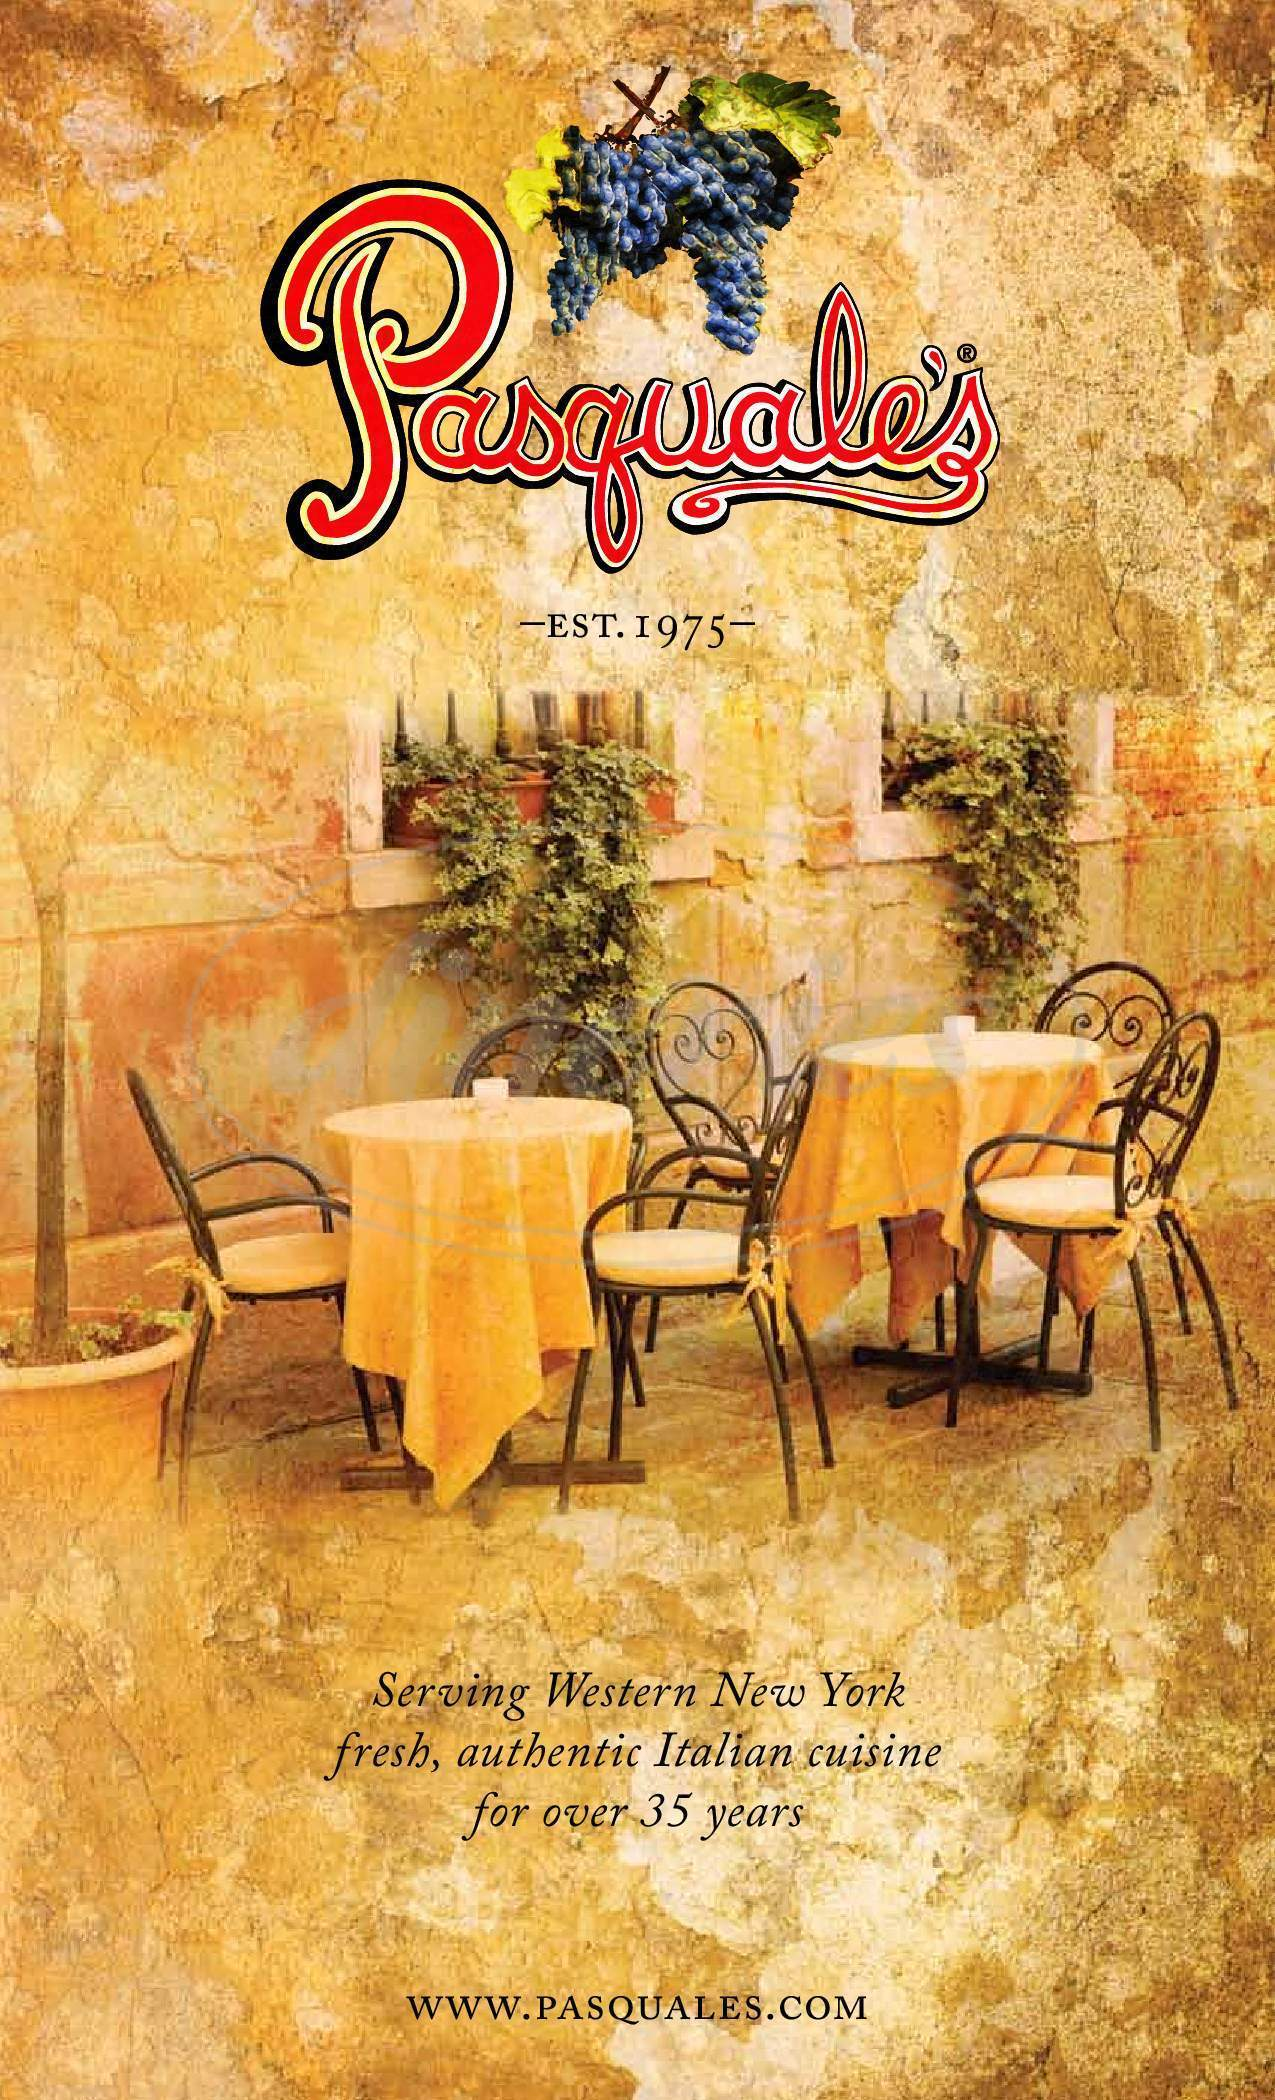 menu for Pasquale's